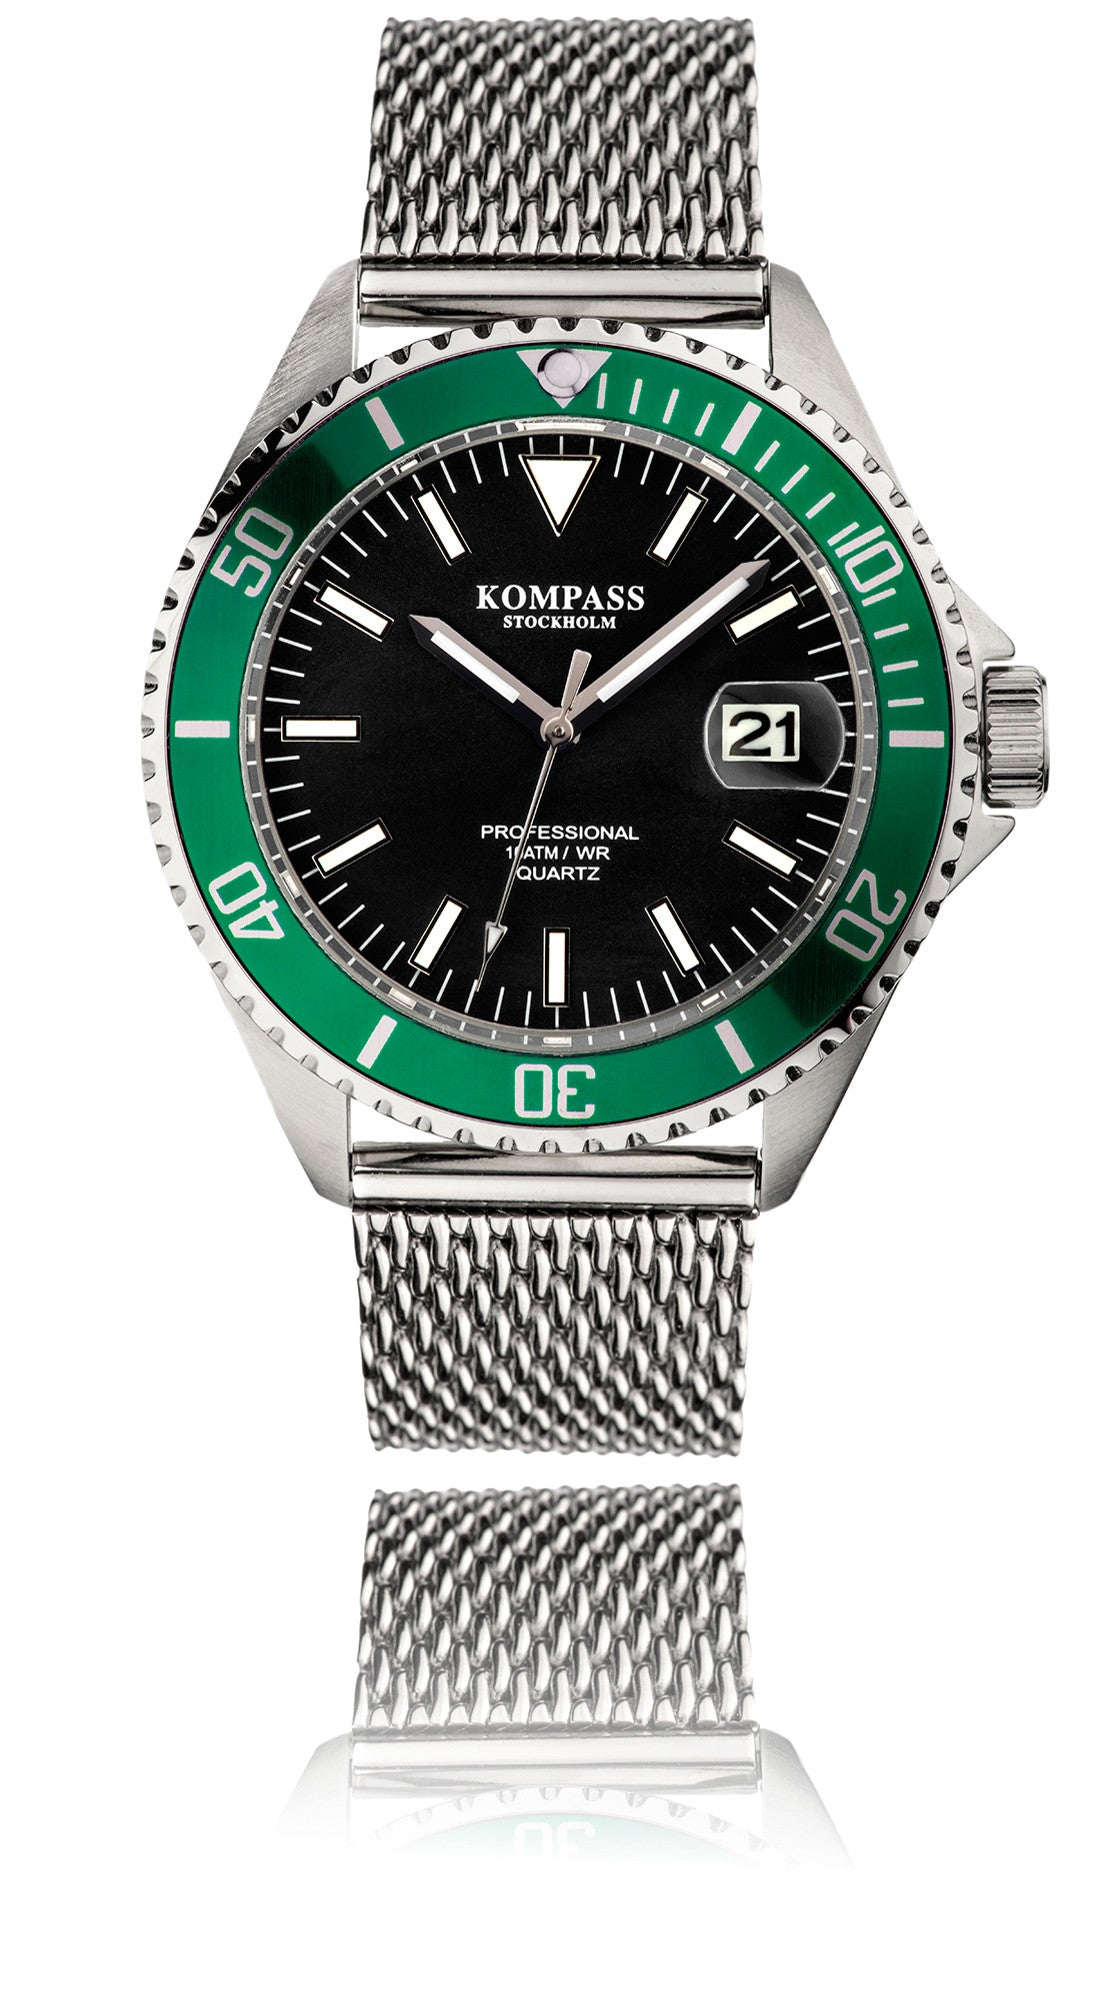 crown gear only patrol is brand rag dials rock limited how dial with celebrate to forest yes edition best really the watches hb handsome two oris green d color knows but meant because efforts this big keep